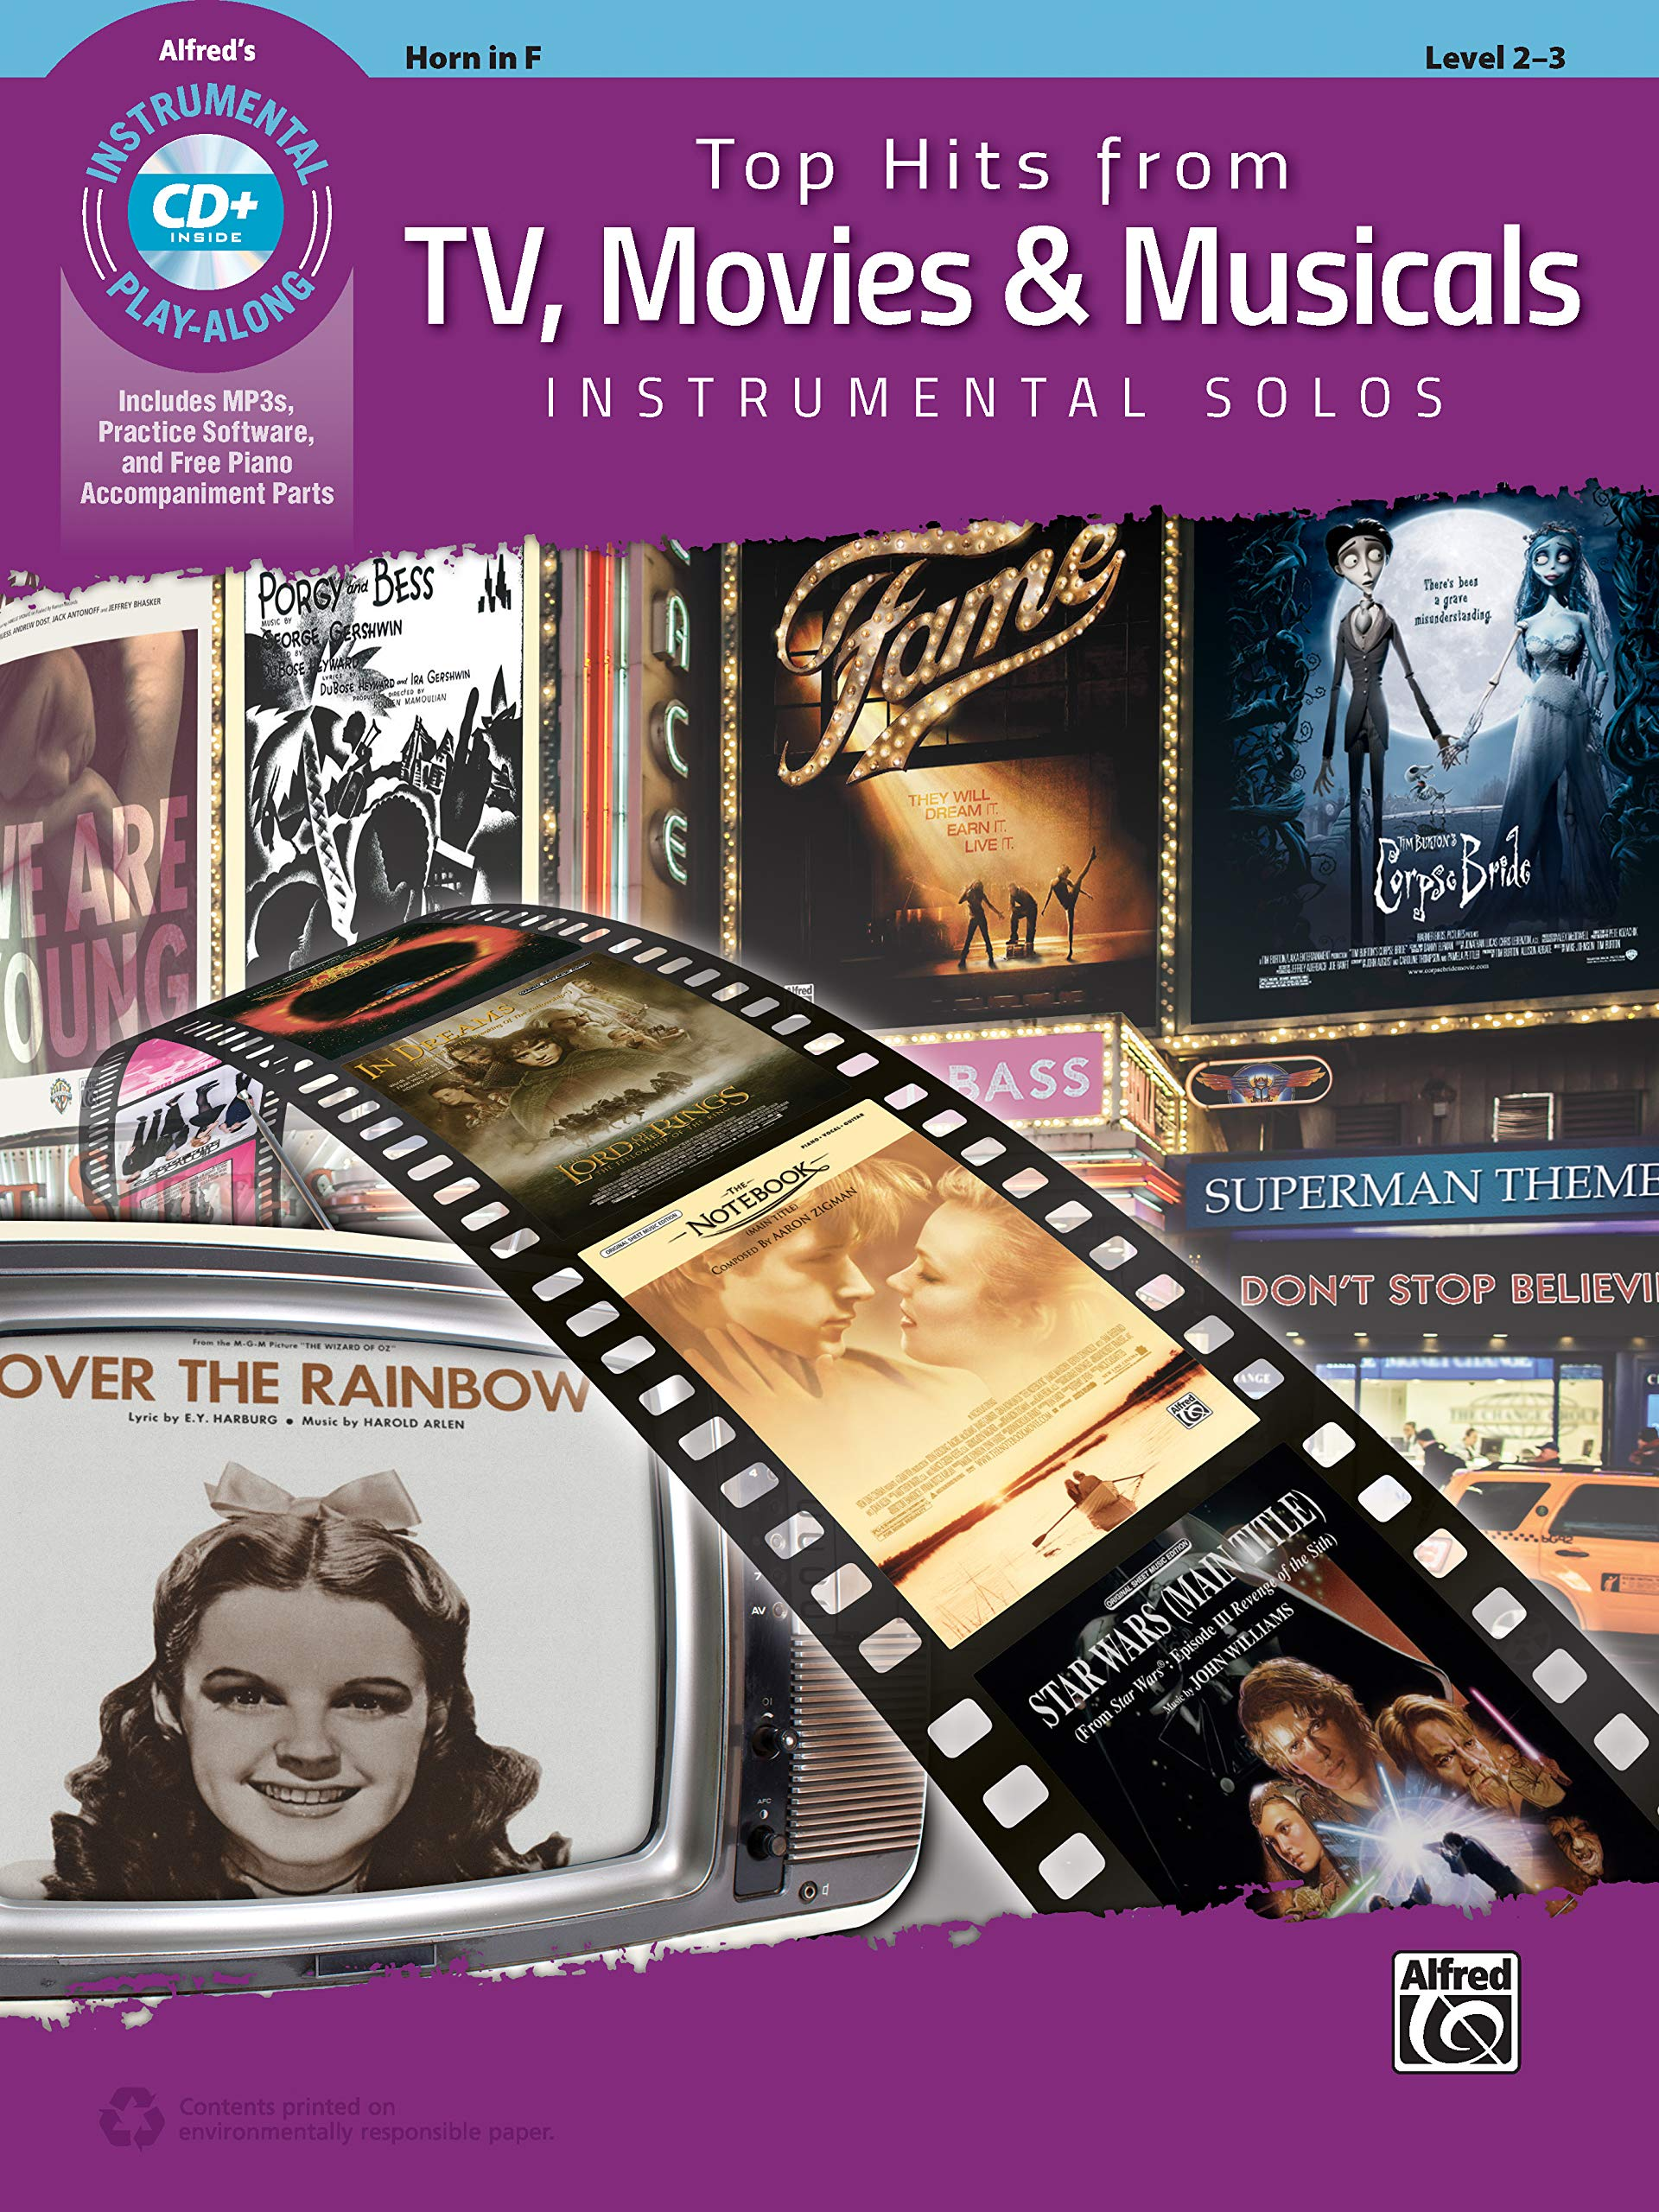 Top Hits From TV Movies And Musicals Instrumental Solos   Horn In F  Incl. CD   Top Hits Instrumental Solos